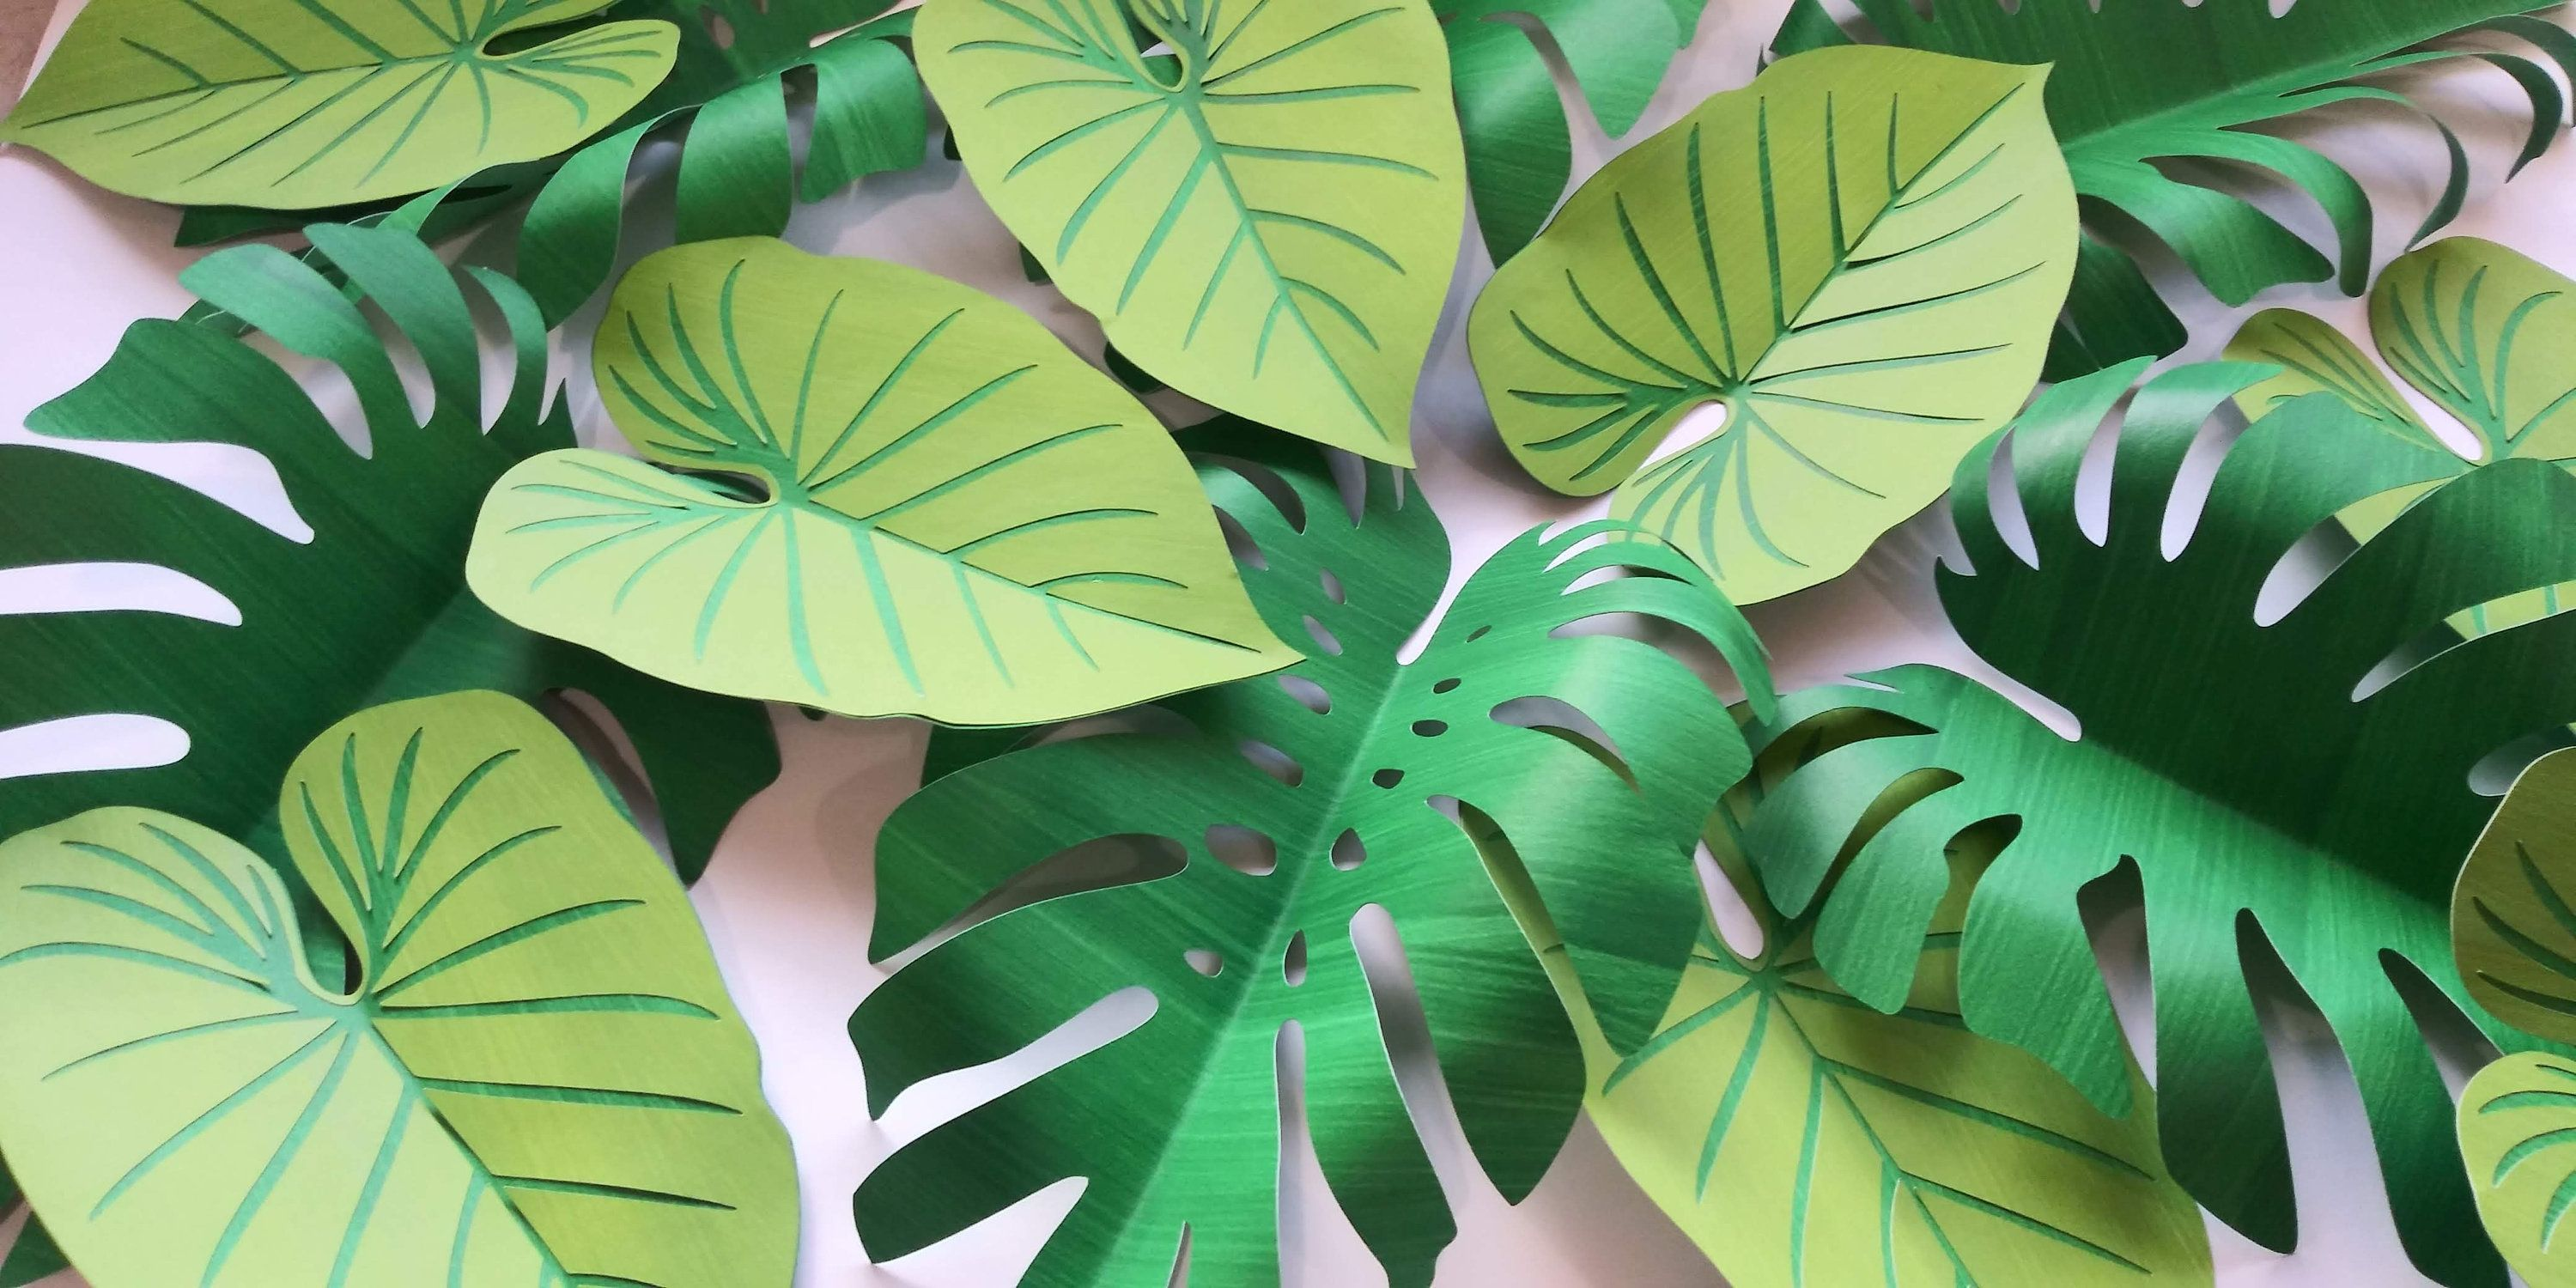 24 Tropical Leaves Paper Monstera and Elephant Ears Green Leaves Heavy Weight Paper D.I.Y Safari Backdrop Jungle Party Baby Shower #elephantearsandtropicals 24 Tropical Leaves Paper Monstera and Elephant Ears Green Leaves Heavy Weight Paper  D.I.Y Safari Backdrop Jungle Party Baby Shower #elephantearsandtropicals